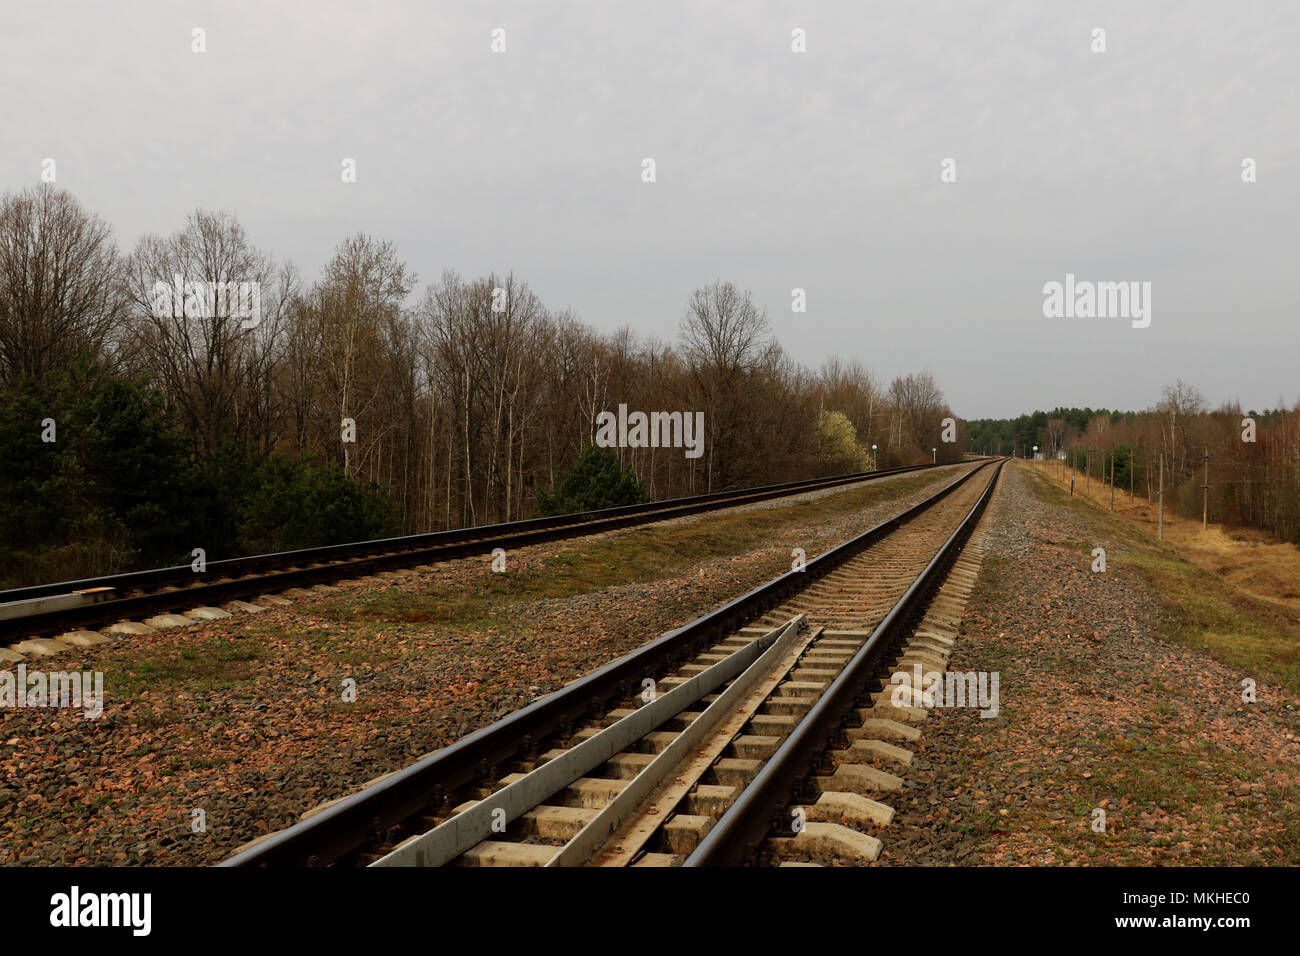 A railway along which trees grow with small clouds. Background - Stock Image